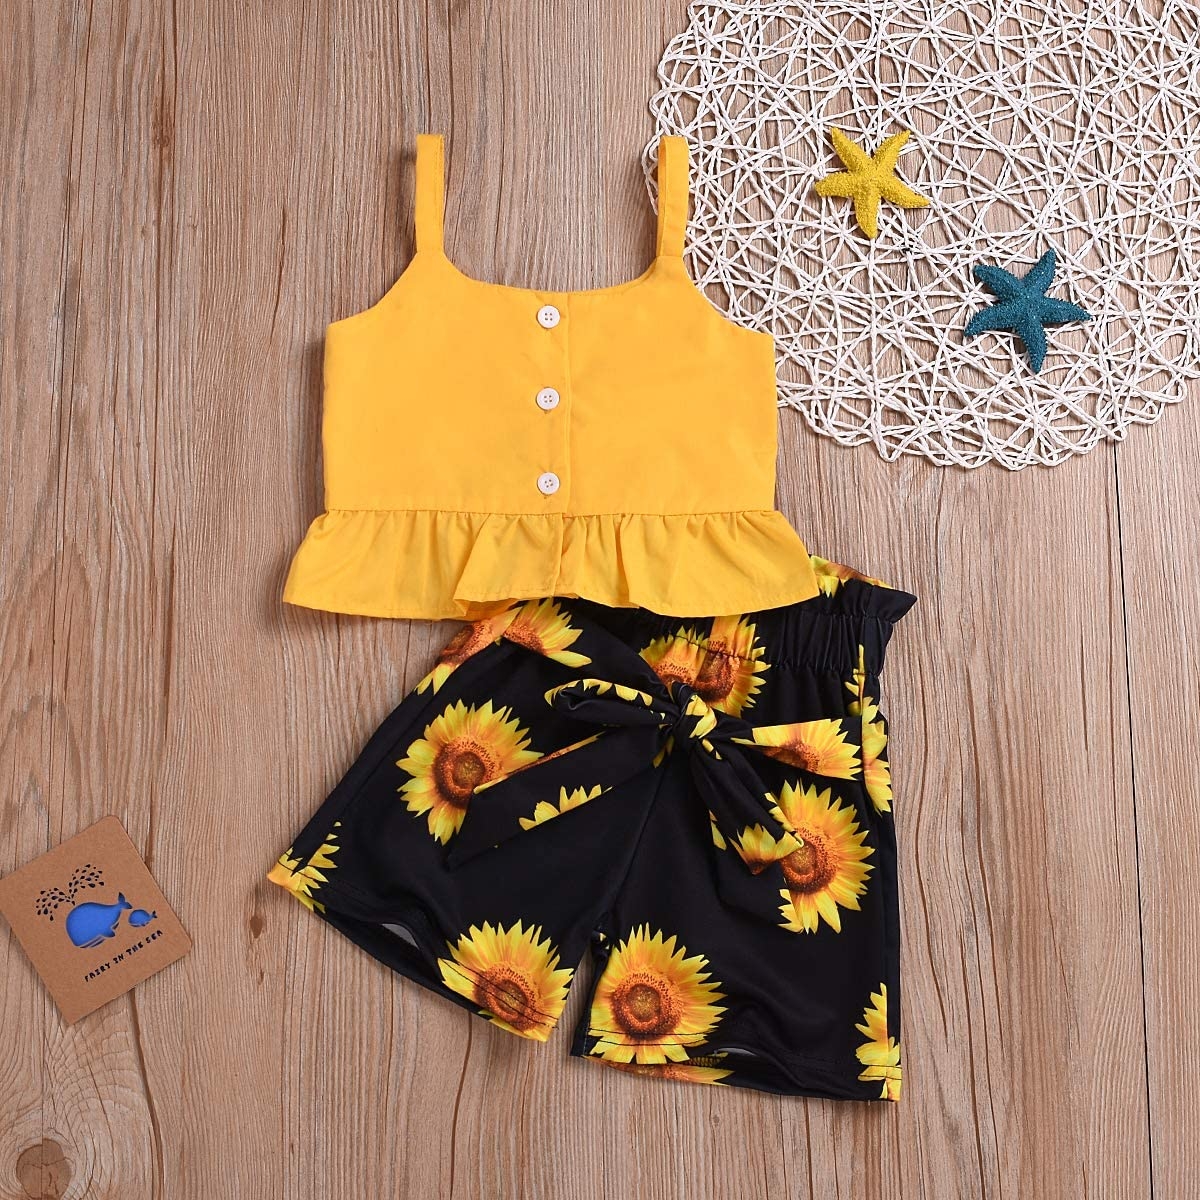 VISGOGO Toddler Baby Girls Outfits Clothes Set Halter Crop Tops Flamingo Short Pants